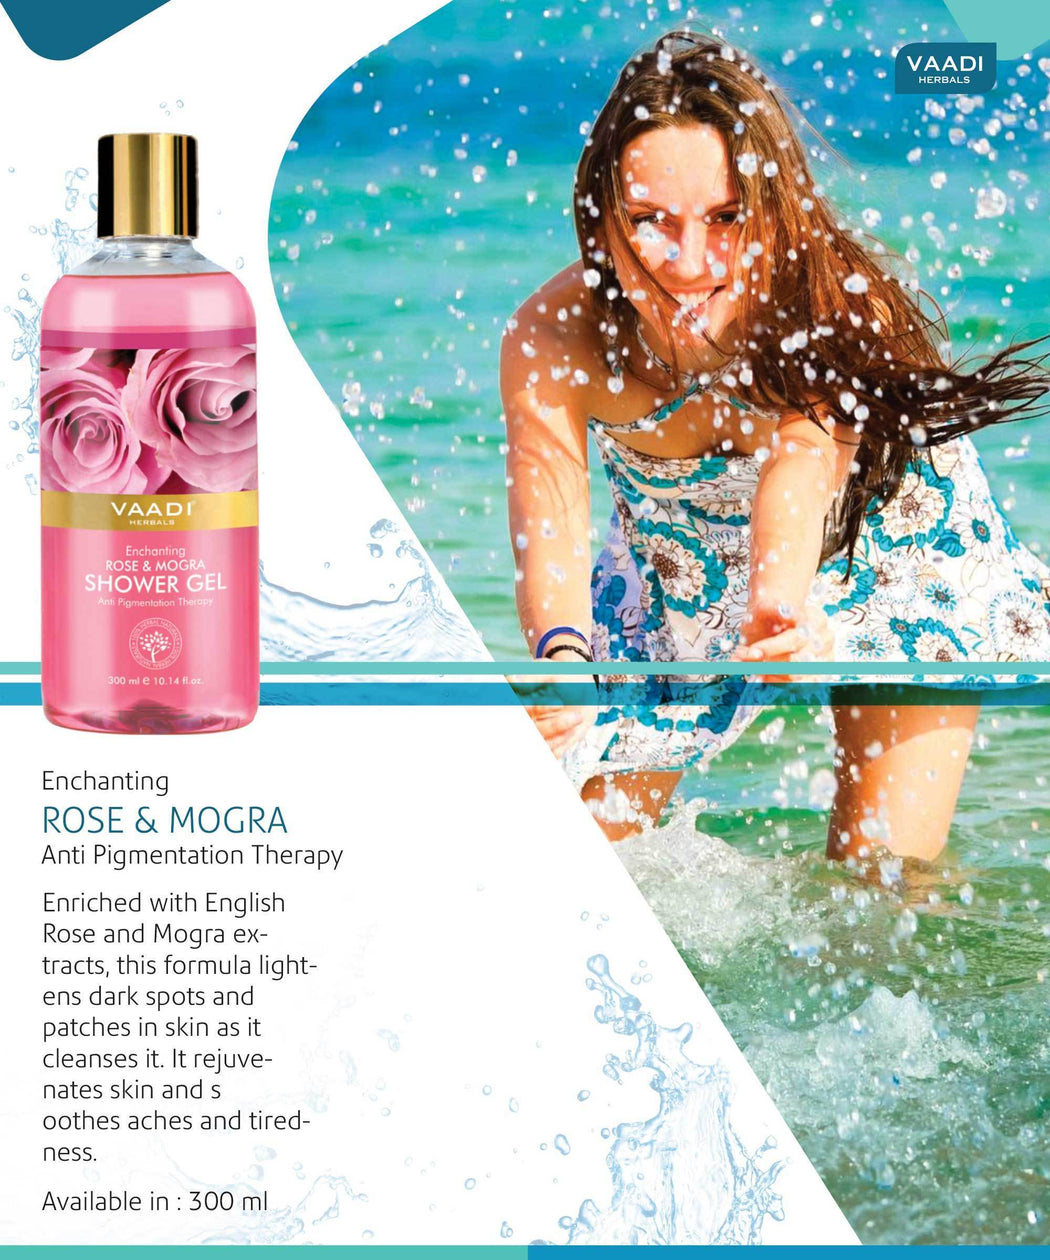 Enchanting Organic Rose & Mogra Shower Gel - Skin Brightening Therapy - Lightens Spots & Patches (300 ml / 10.2 fl oz)